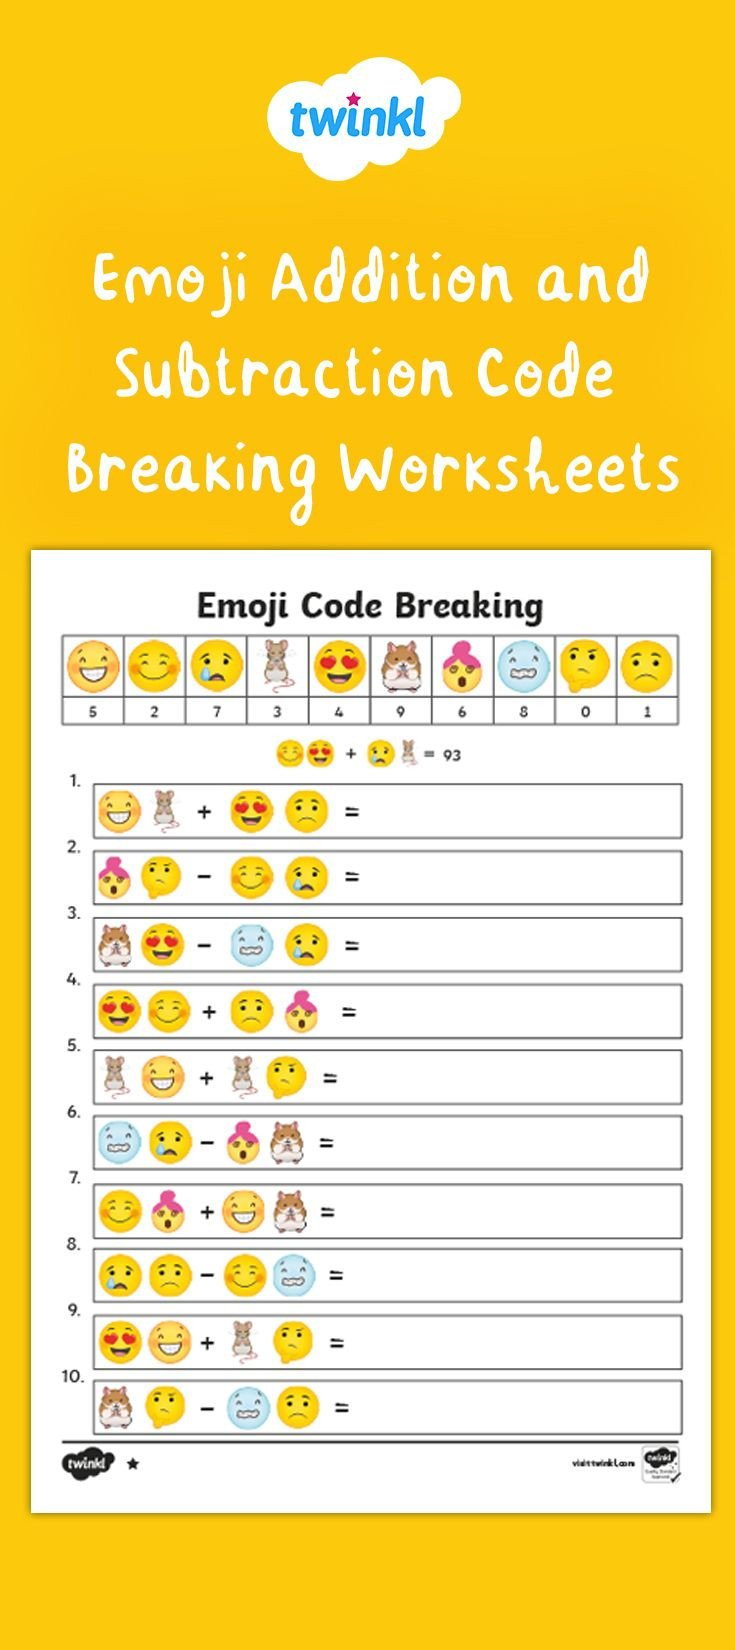 Code Breaking Worksheets Emoji Addition and Subtraction Code Breaking Worksheets